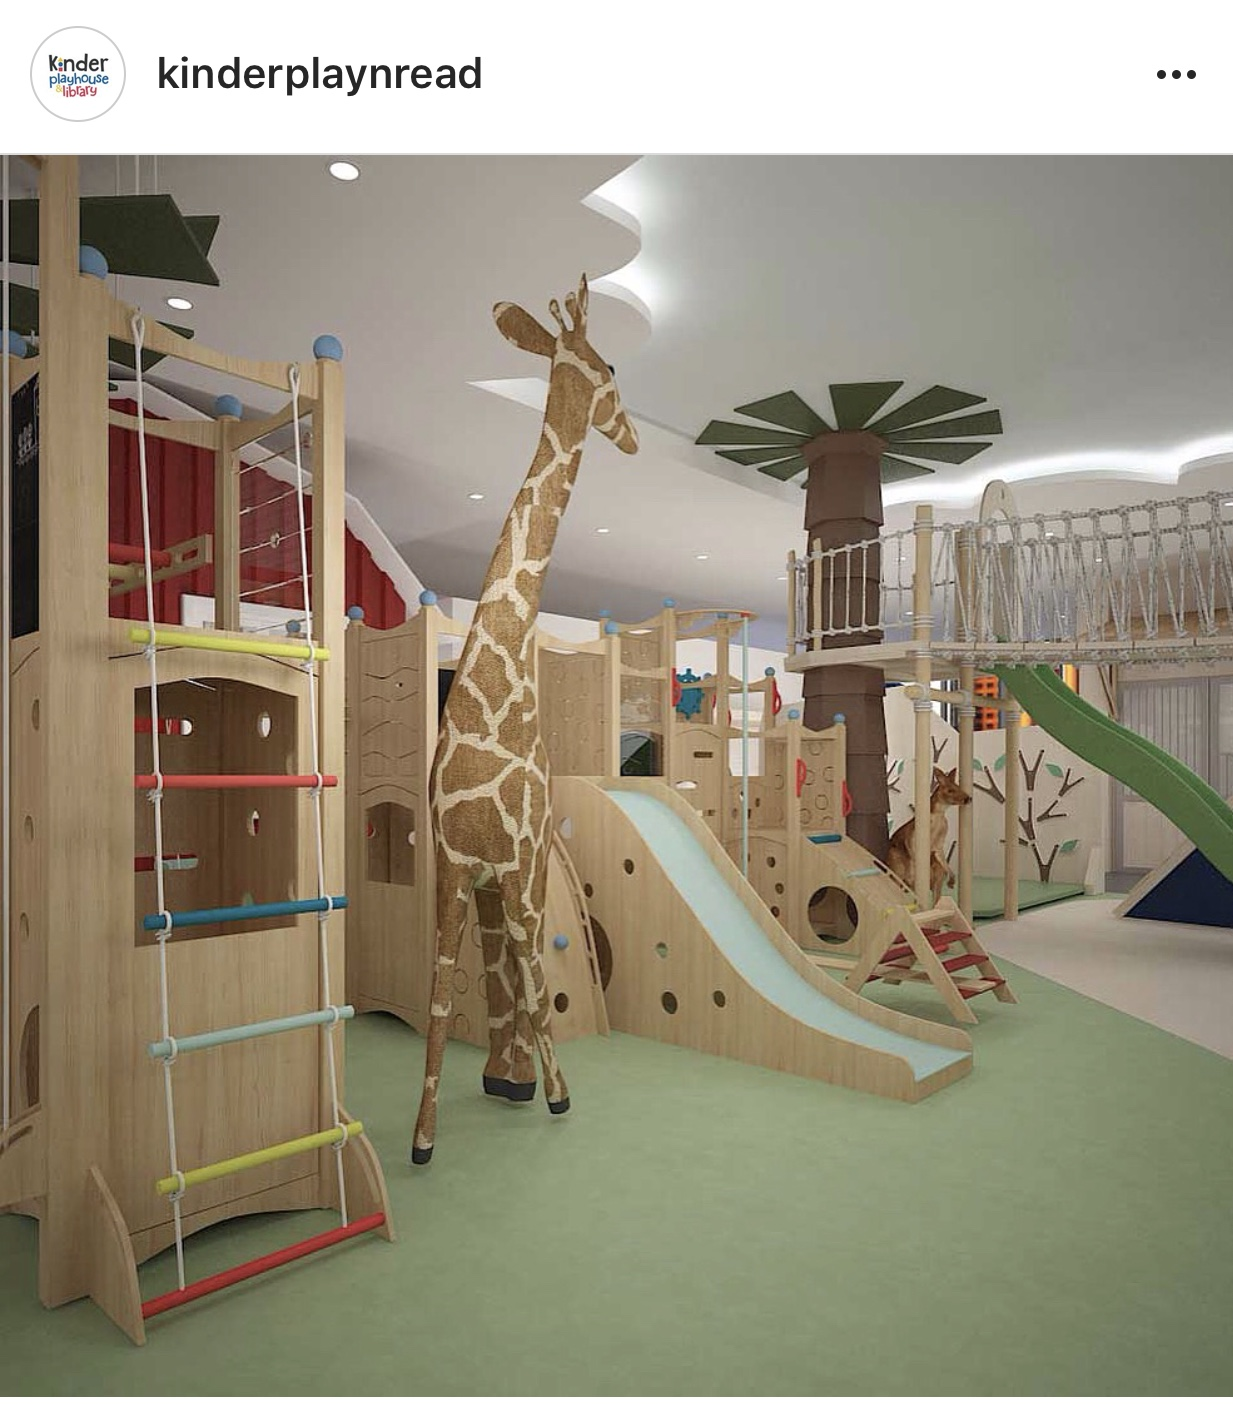 liburananak_kinderplayhouselibrary